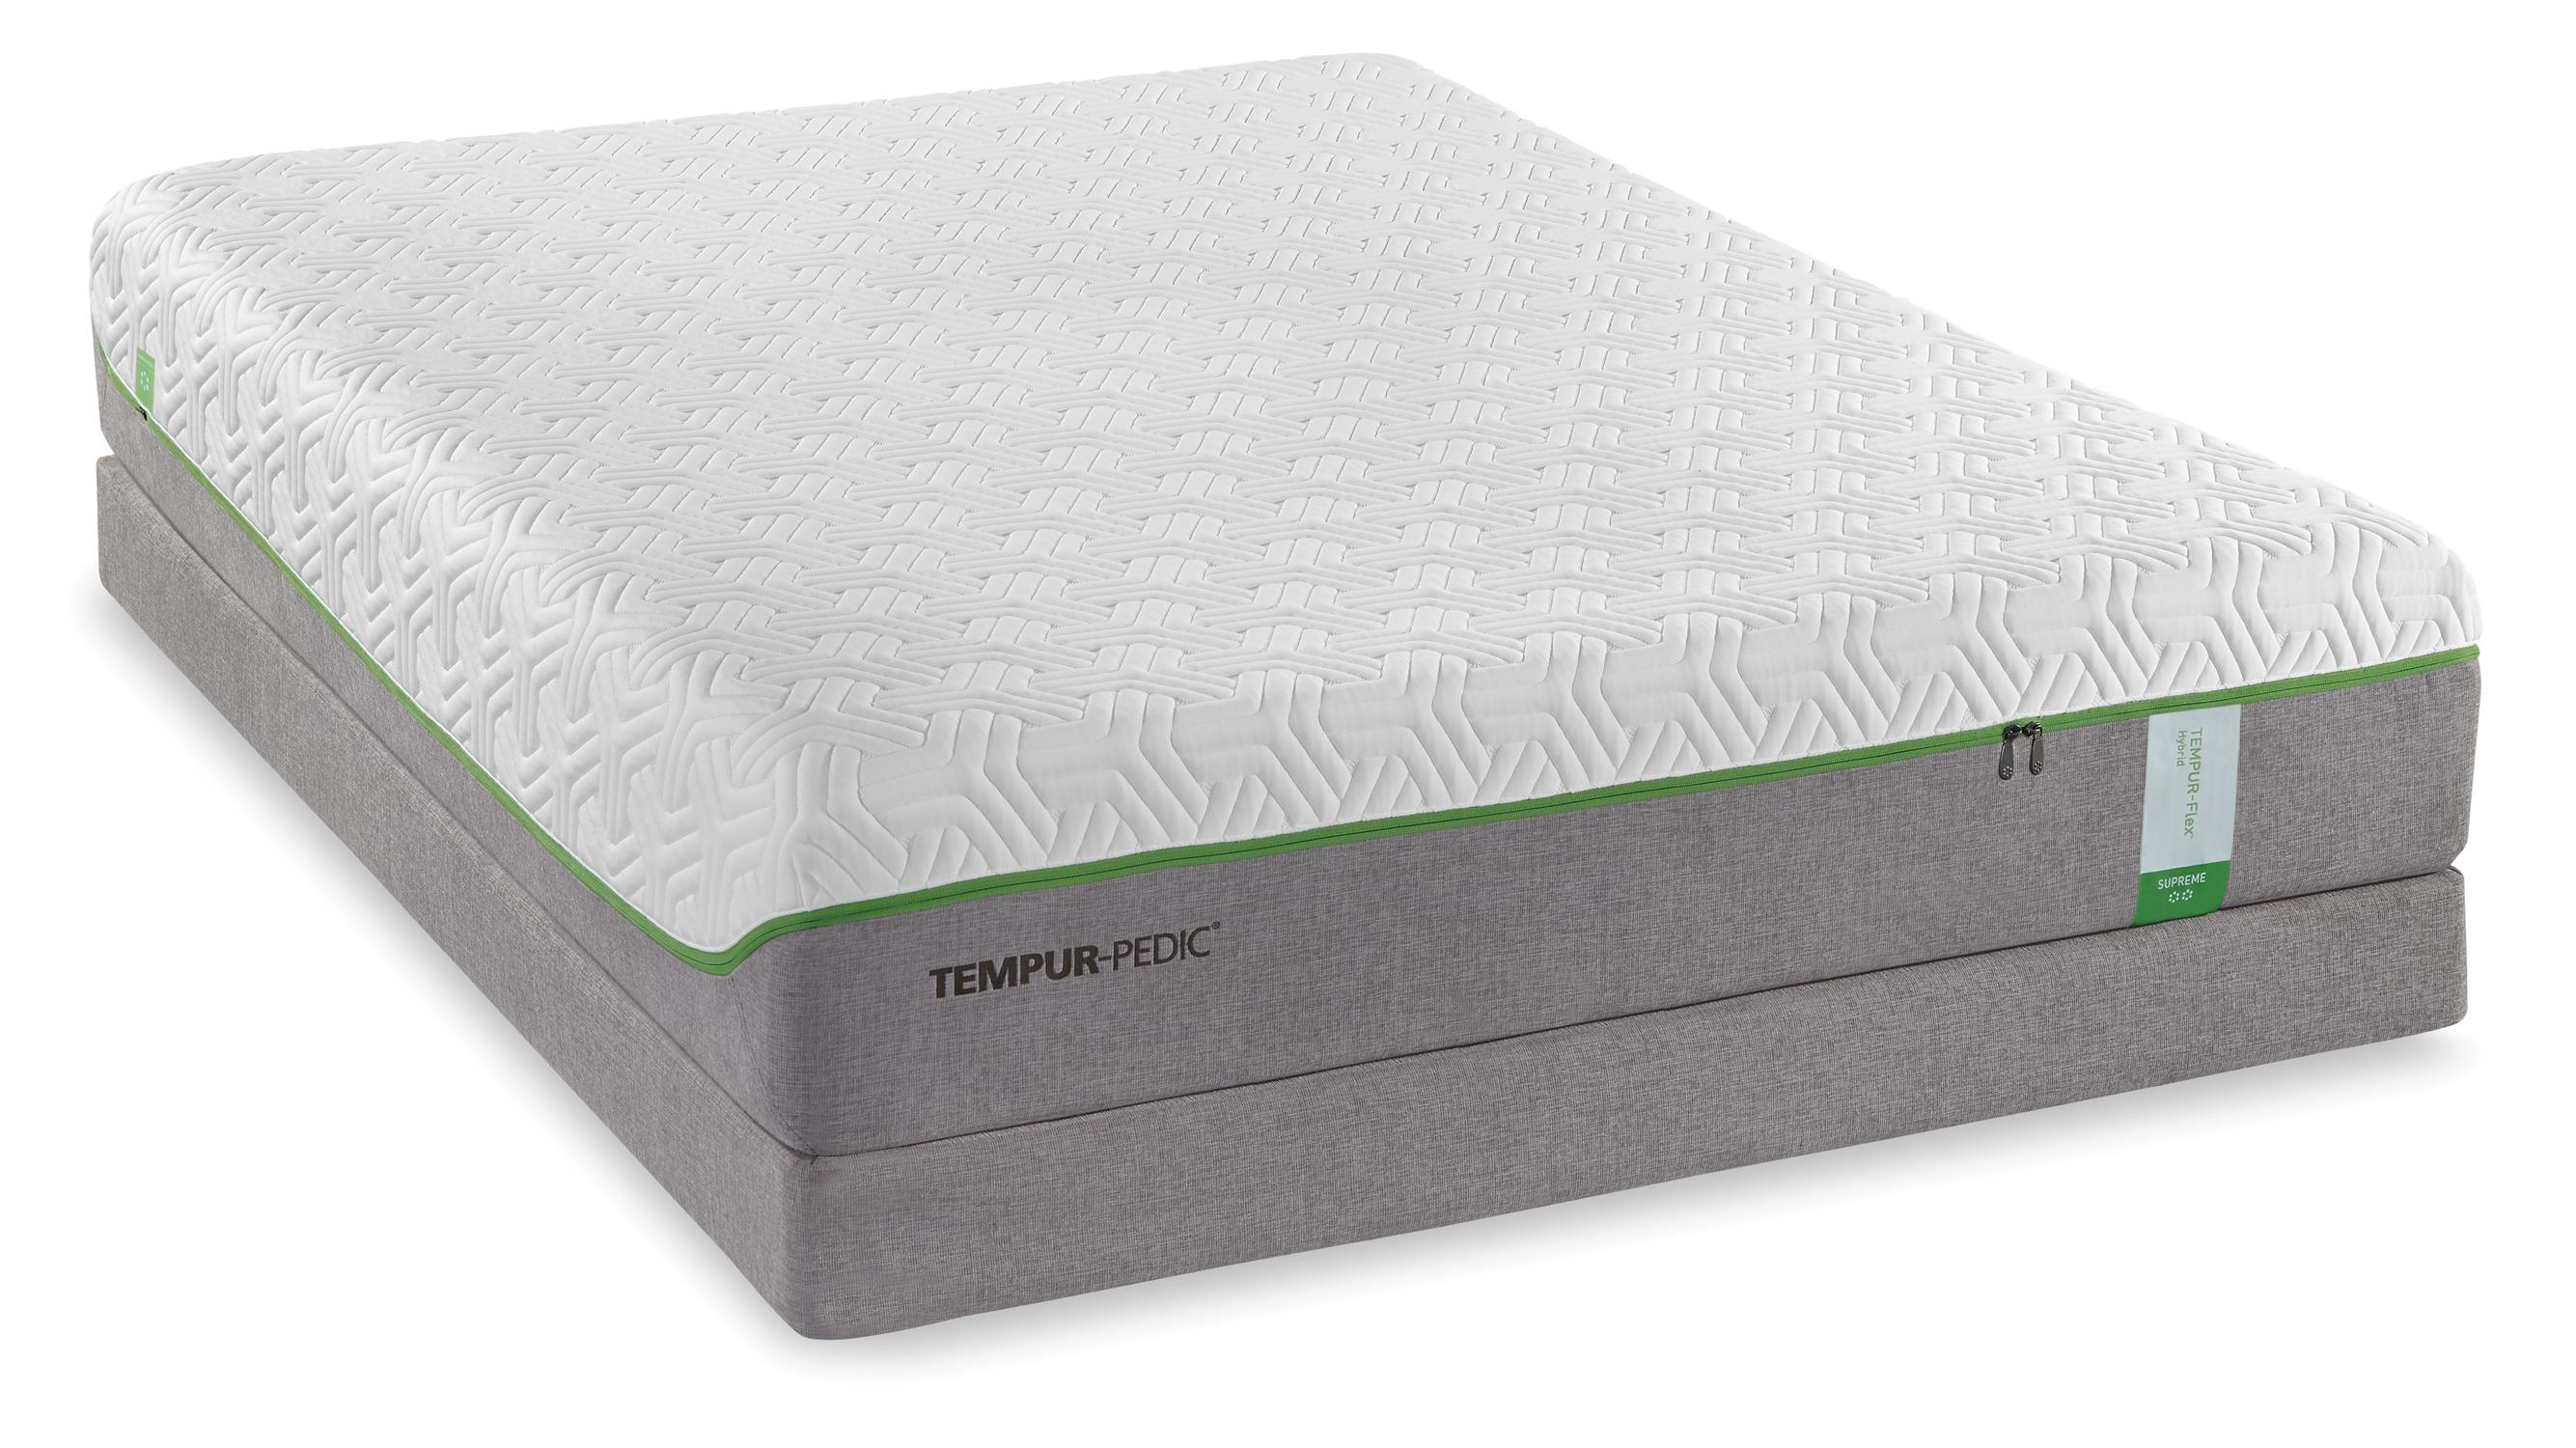 Tempur-Pedic® TEMPUR-Flex Supreme Queen Medium Plush Mattress Set - Item Number: 10116150+20510150